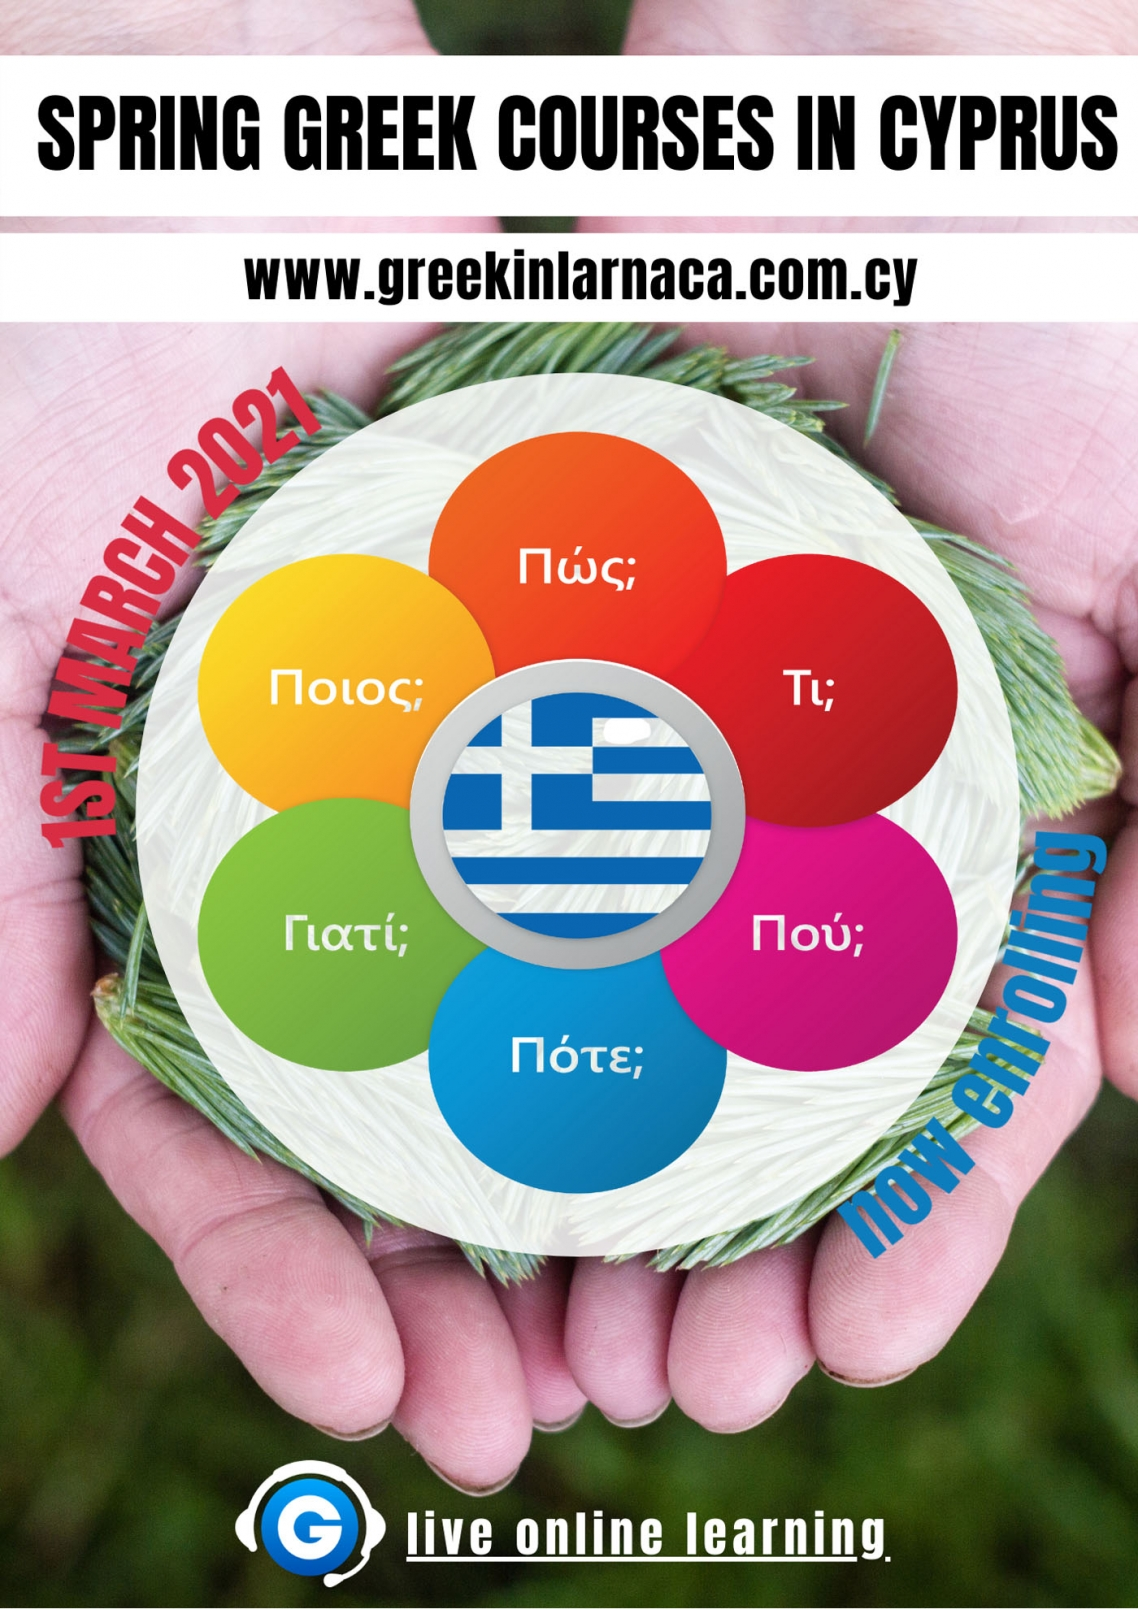 Online Greek Spring Courses in Cyprus, March 2021